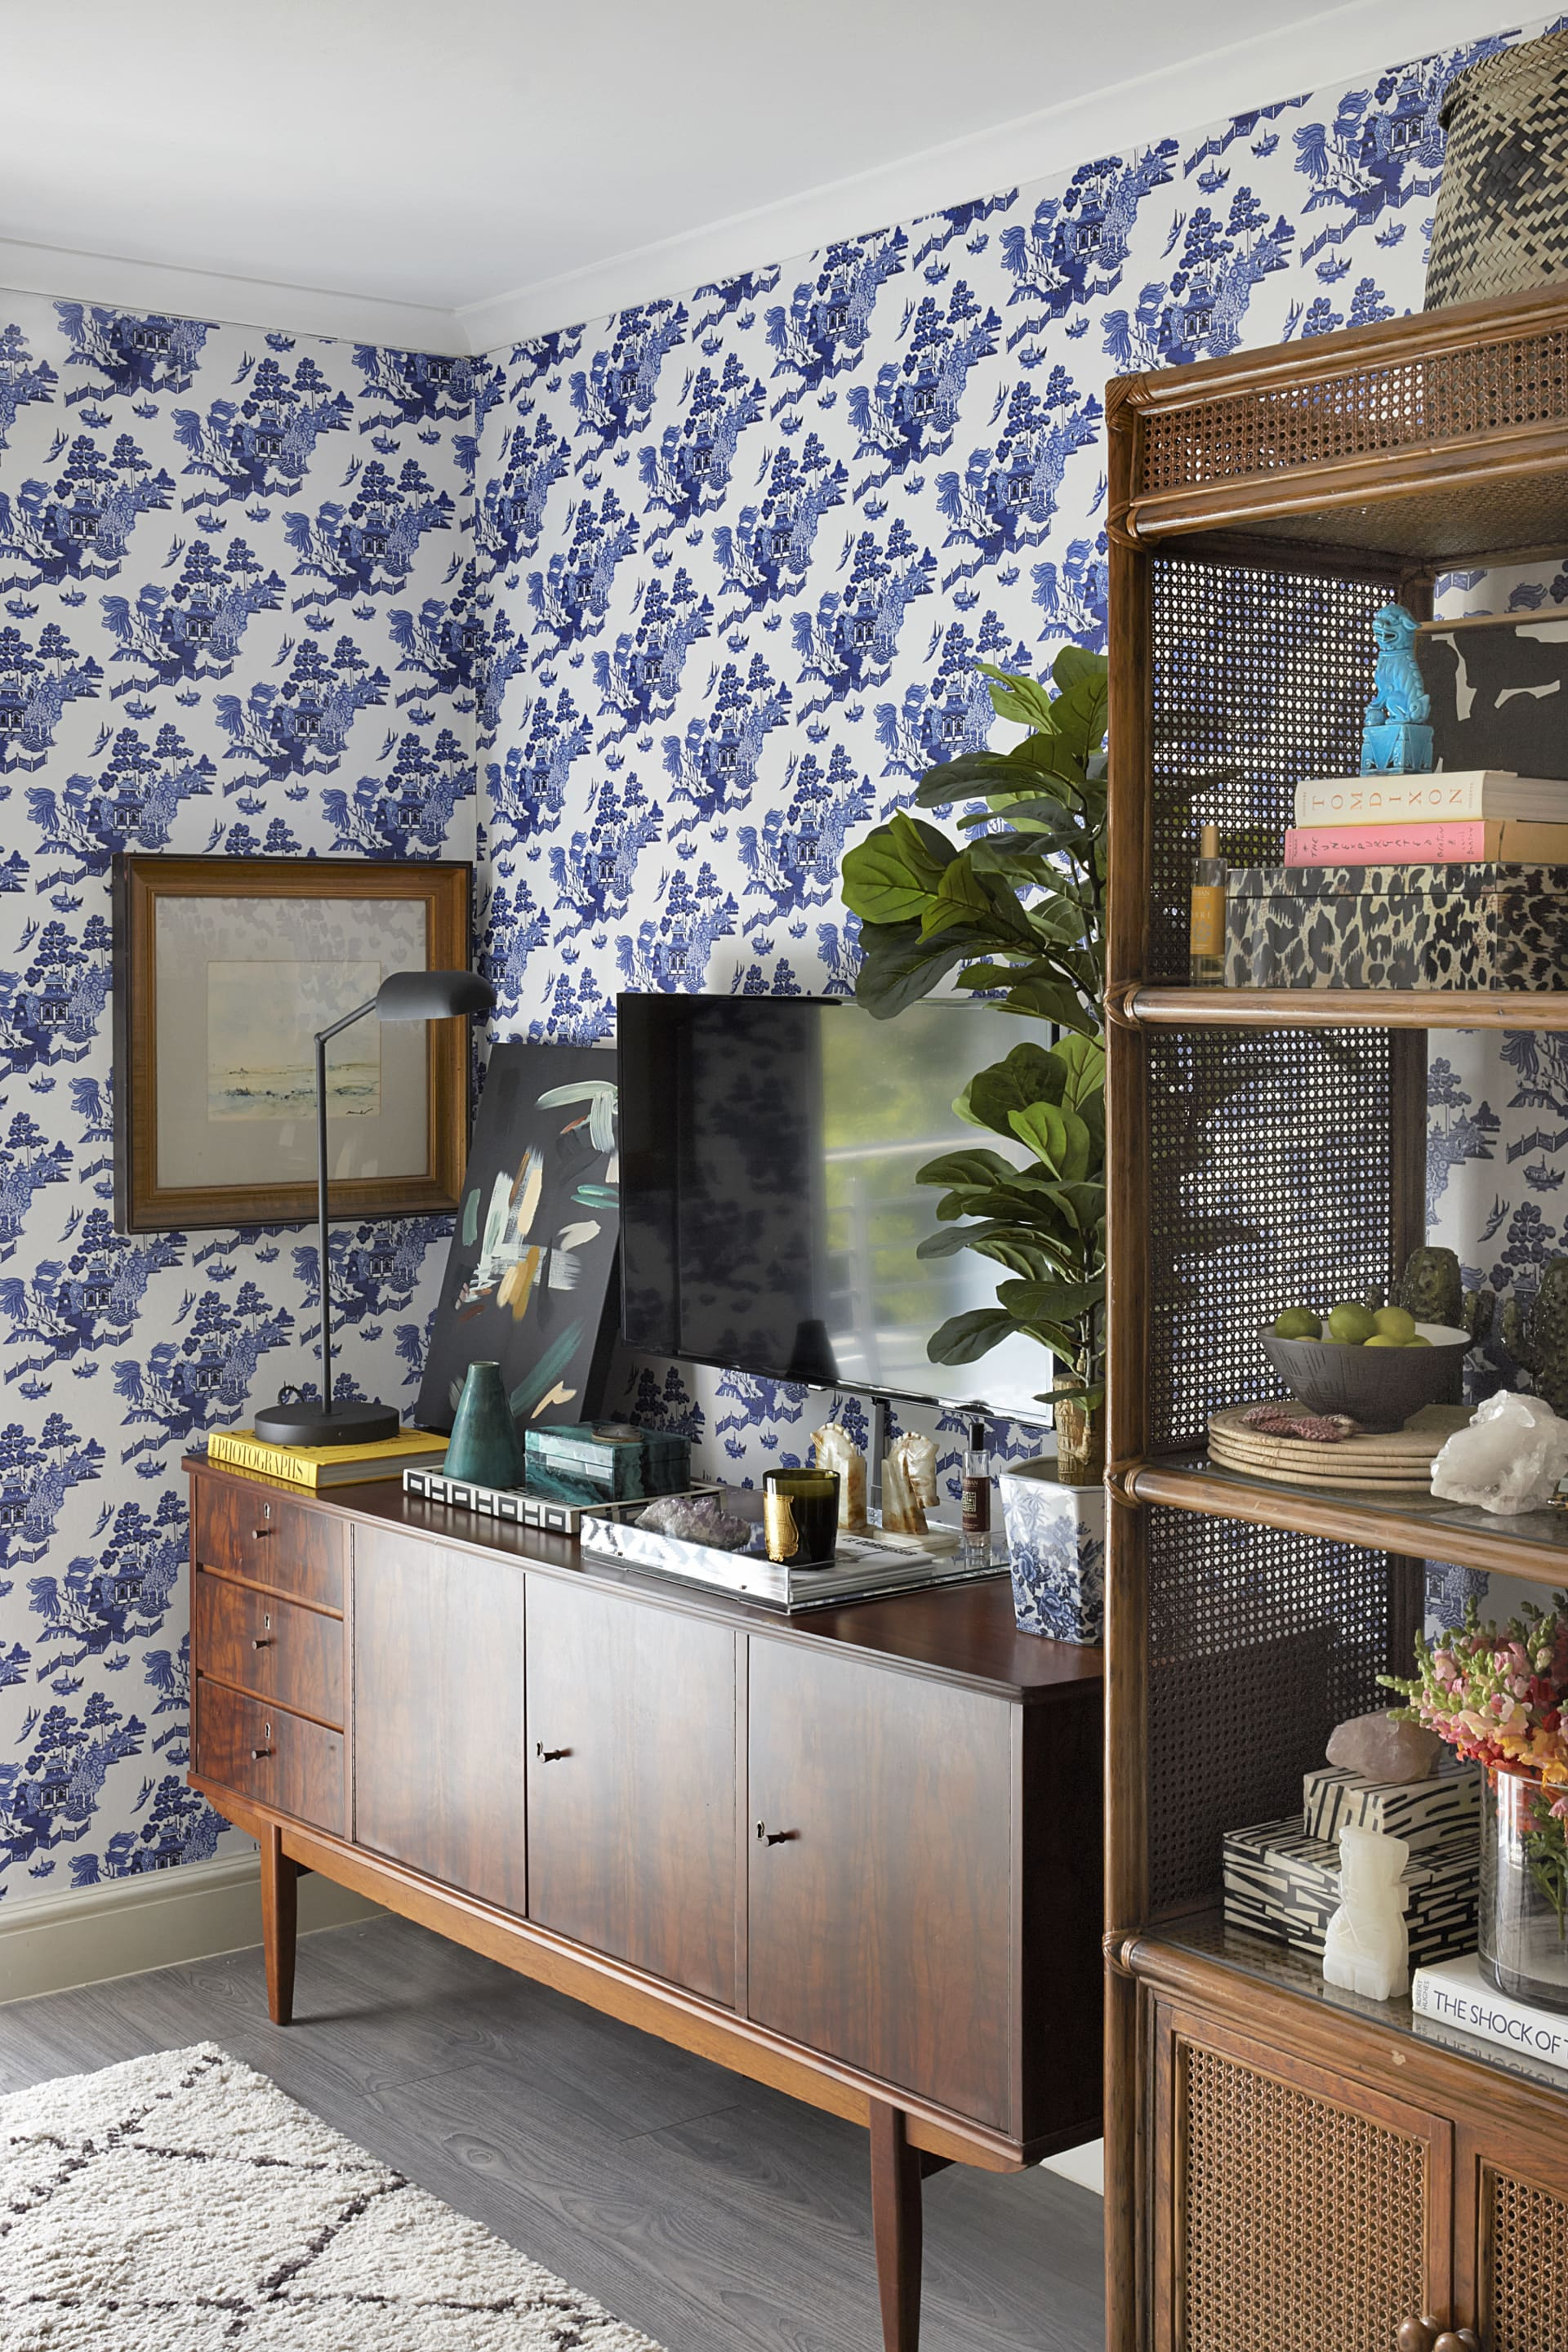 A vintage sideboard and cane bookcase showcase treasured items.© Micky Hoyle